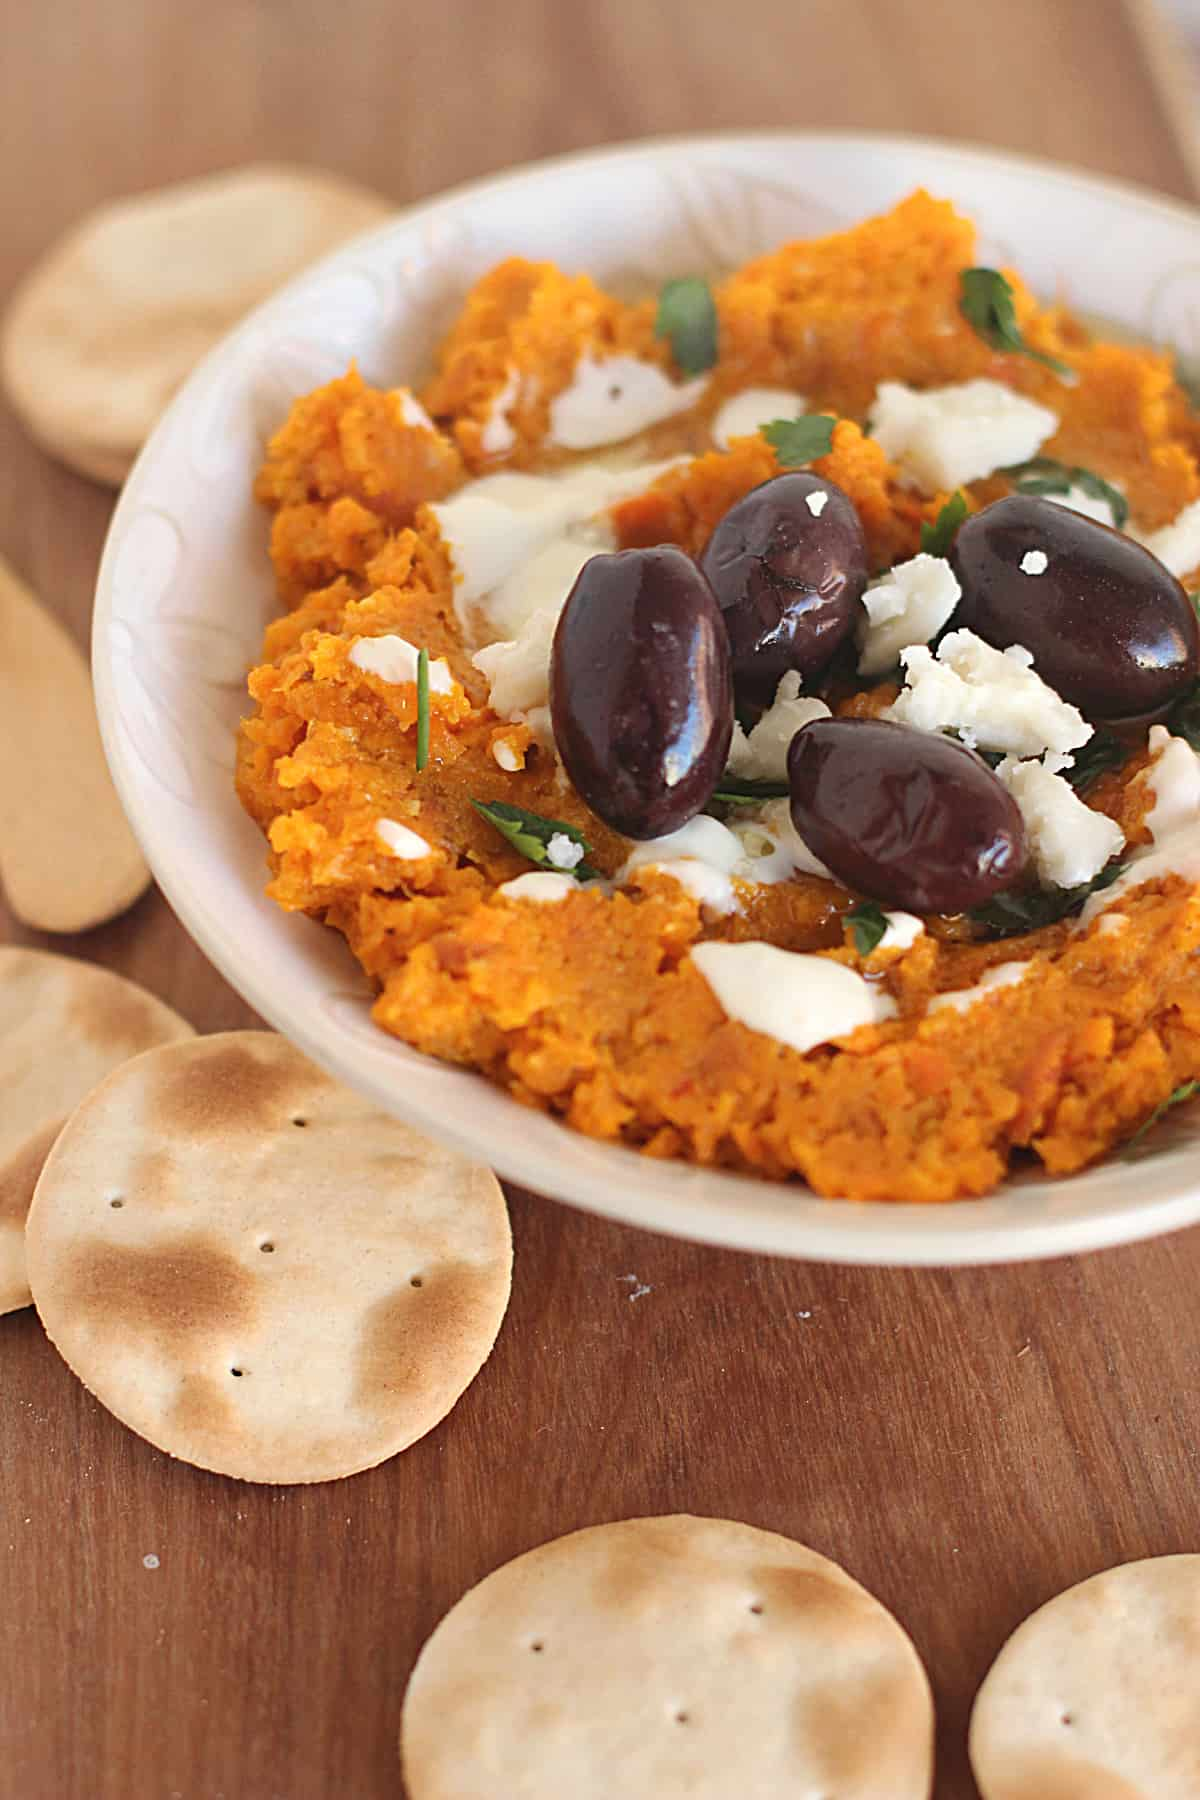 White Bowl of carrot dip, black olives and crackers on wooden board